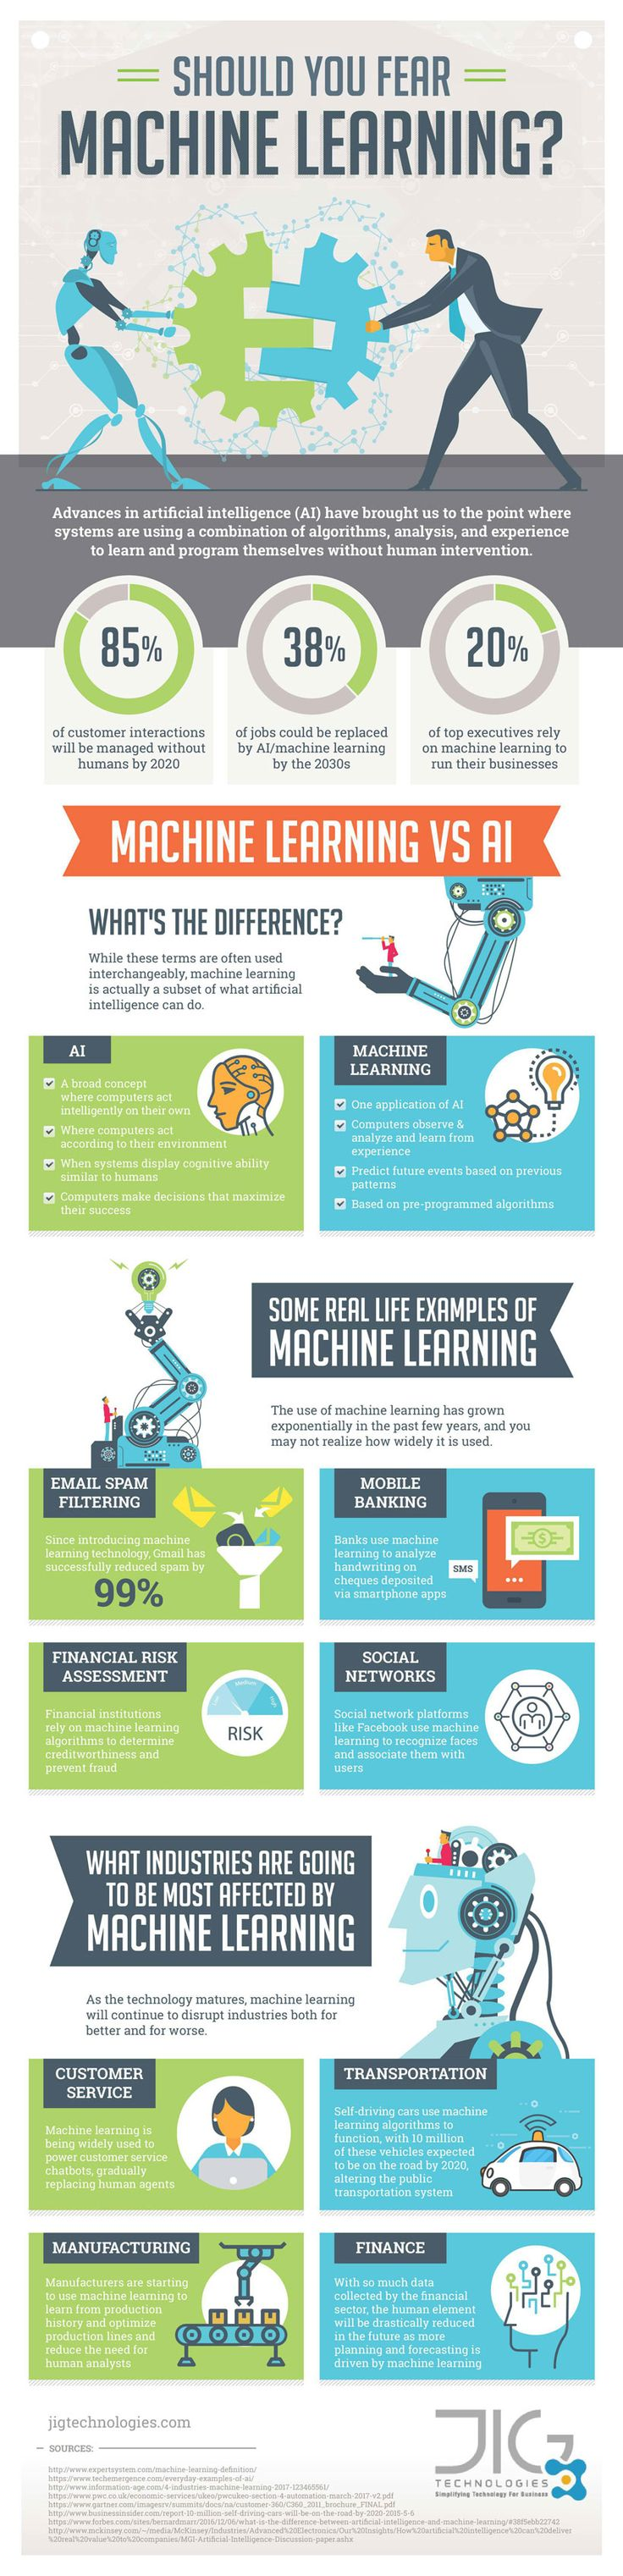 The use of machine learning has grown exponentially in the past few years, and you may not realize how widely it is used. The Should You Fear Machine Learning? Infographic shows that as the technology matures, machine learning will continue to disrupt industries both for better and for worse.